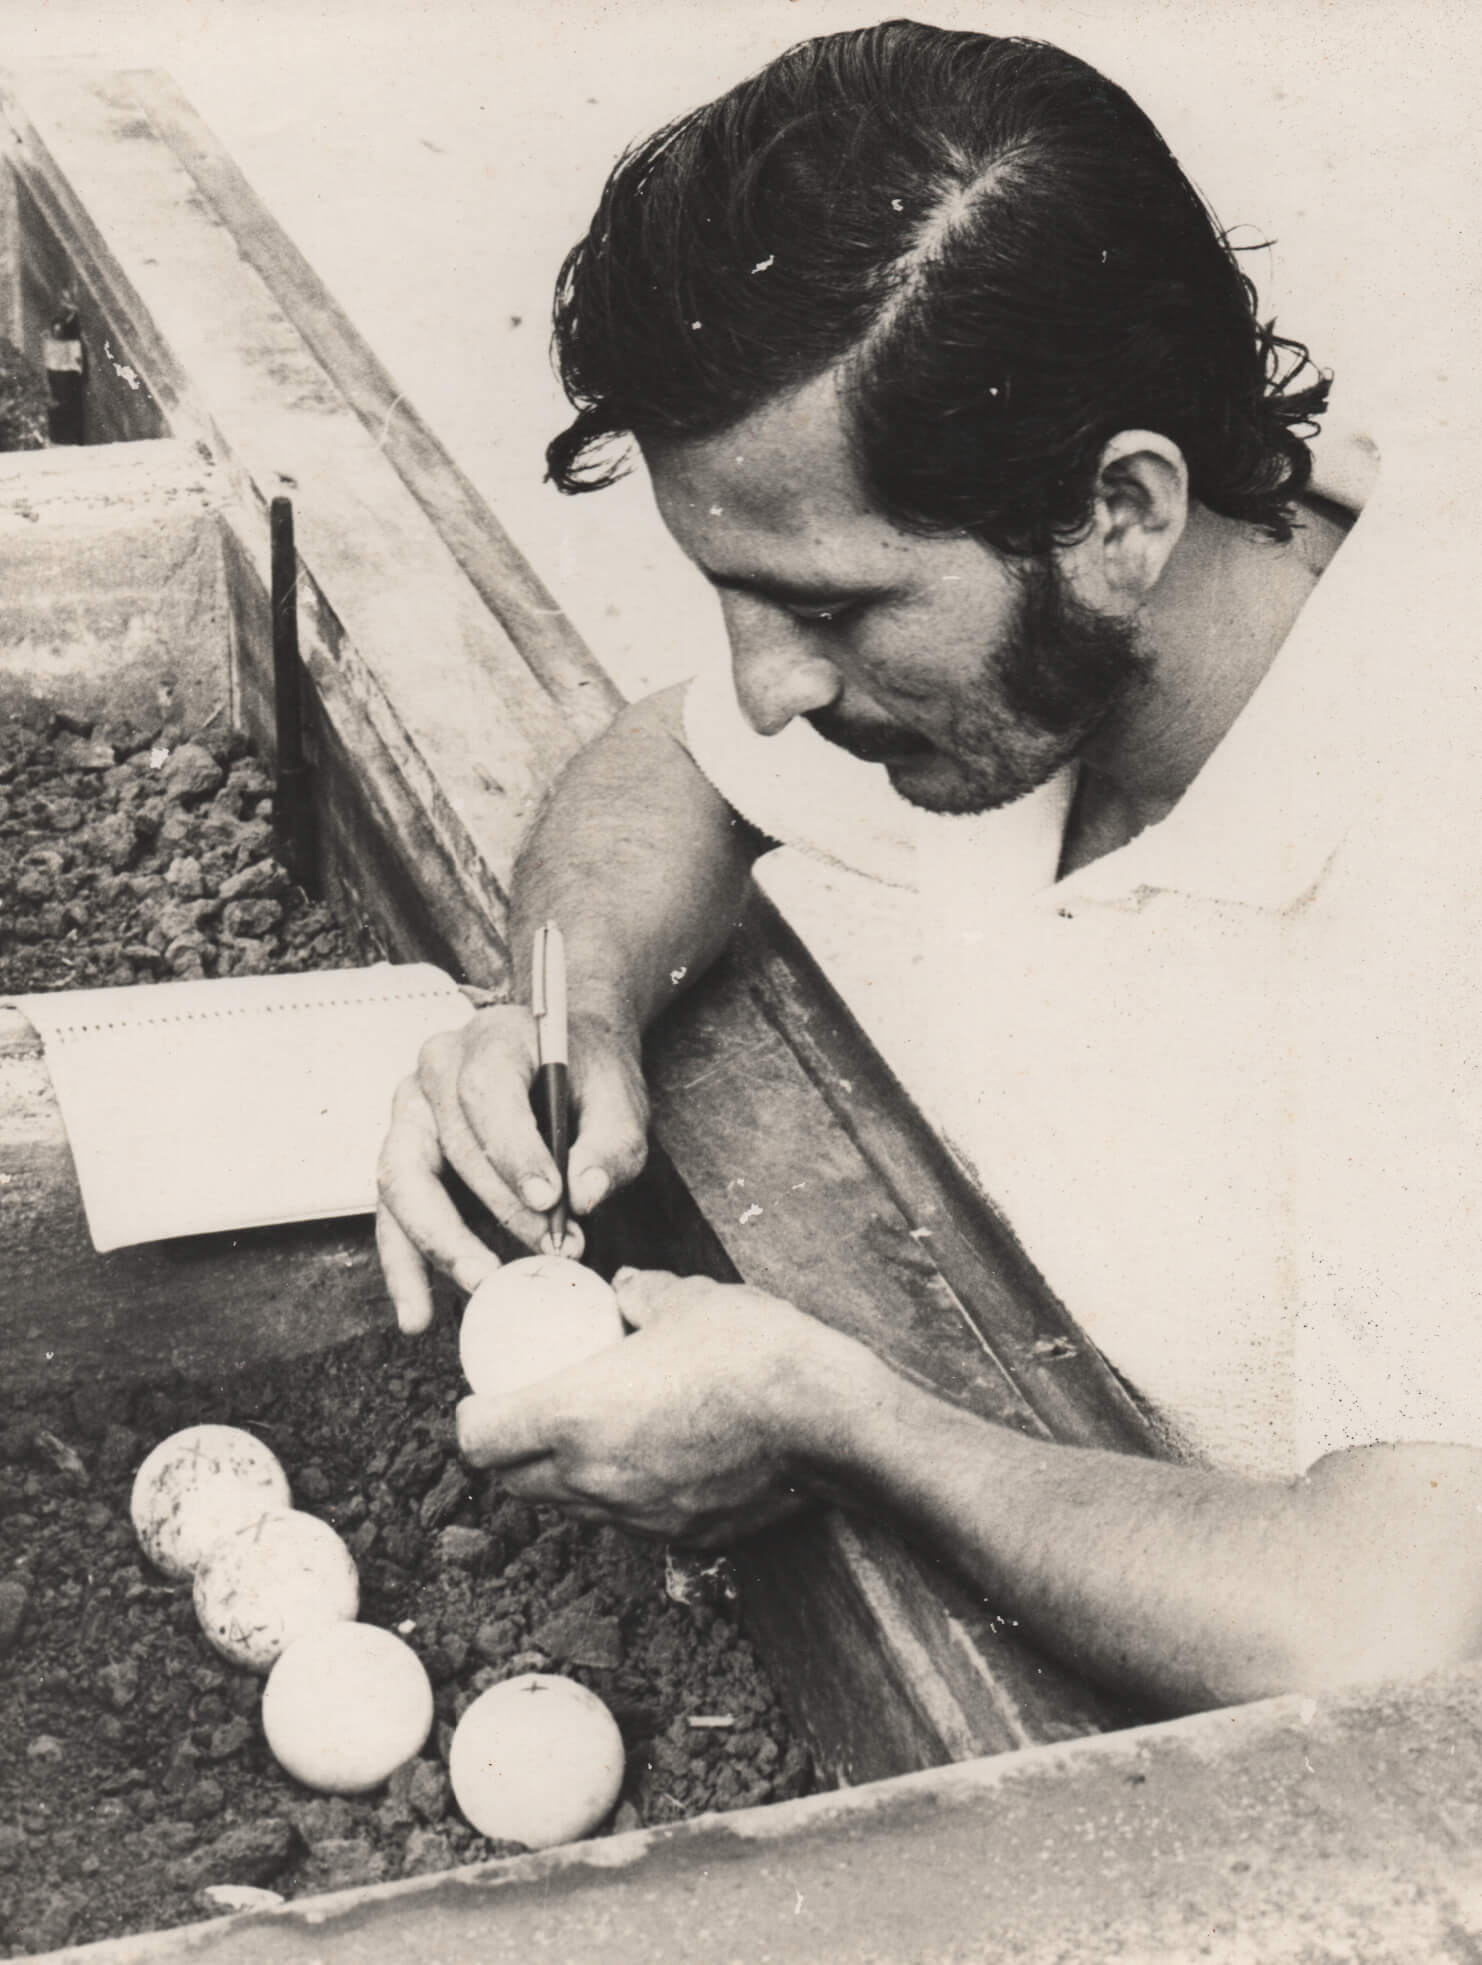 Galapagos National Park official, Peppe Villa marking giant tortoise eggs in 1974